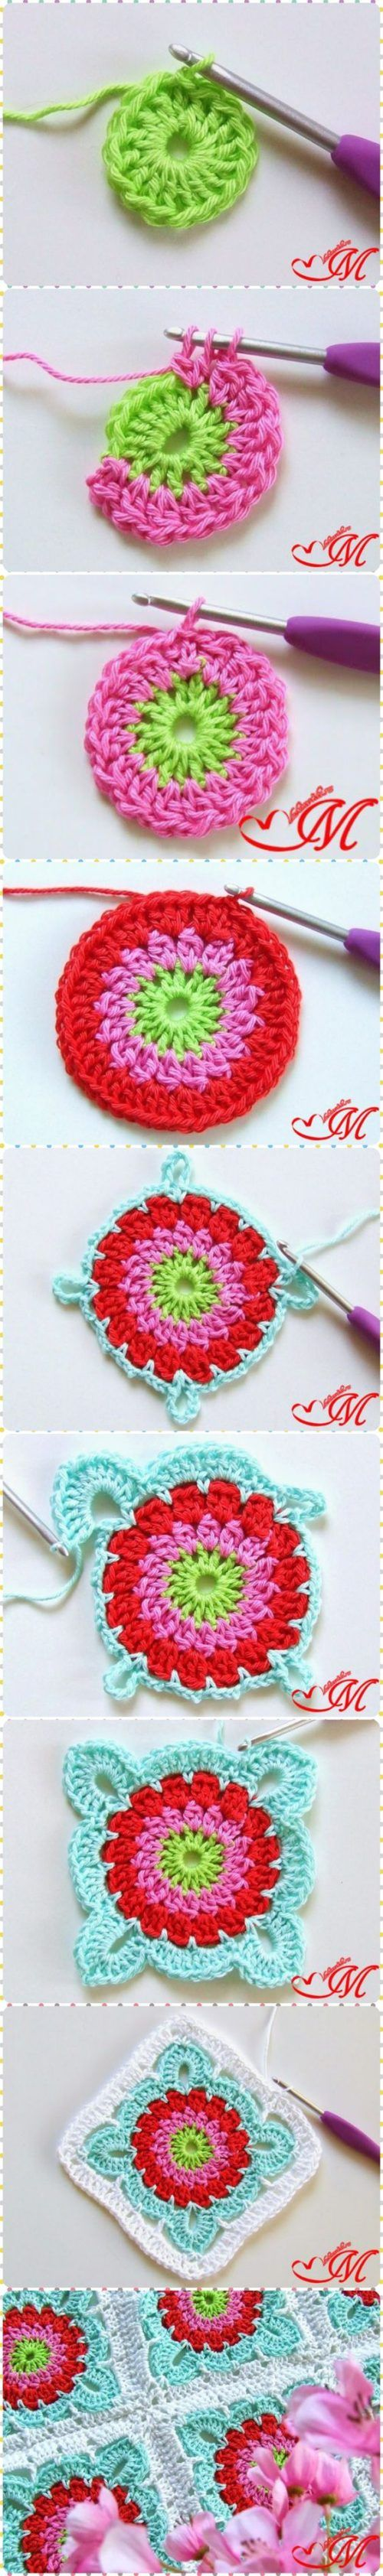 Crochet Granny Square Flowers